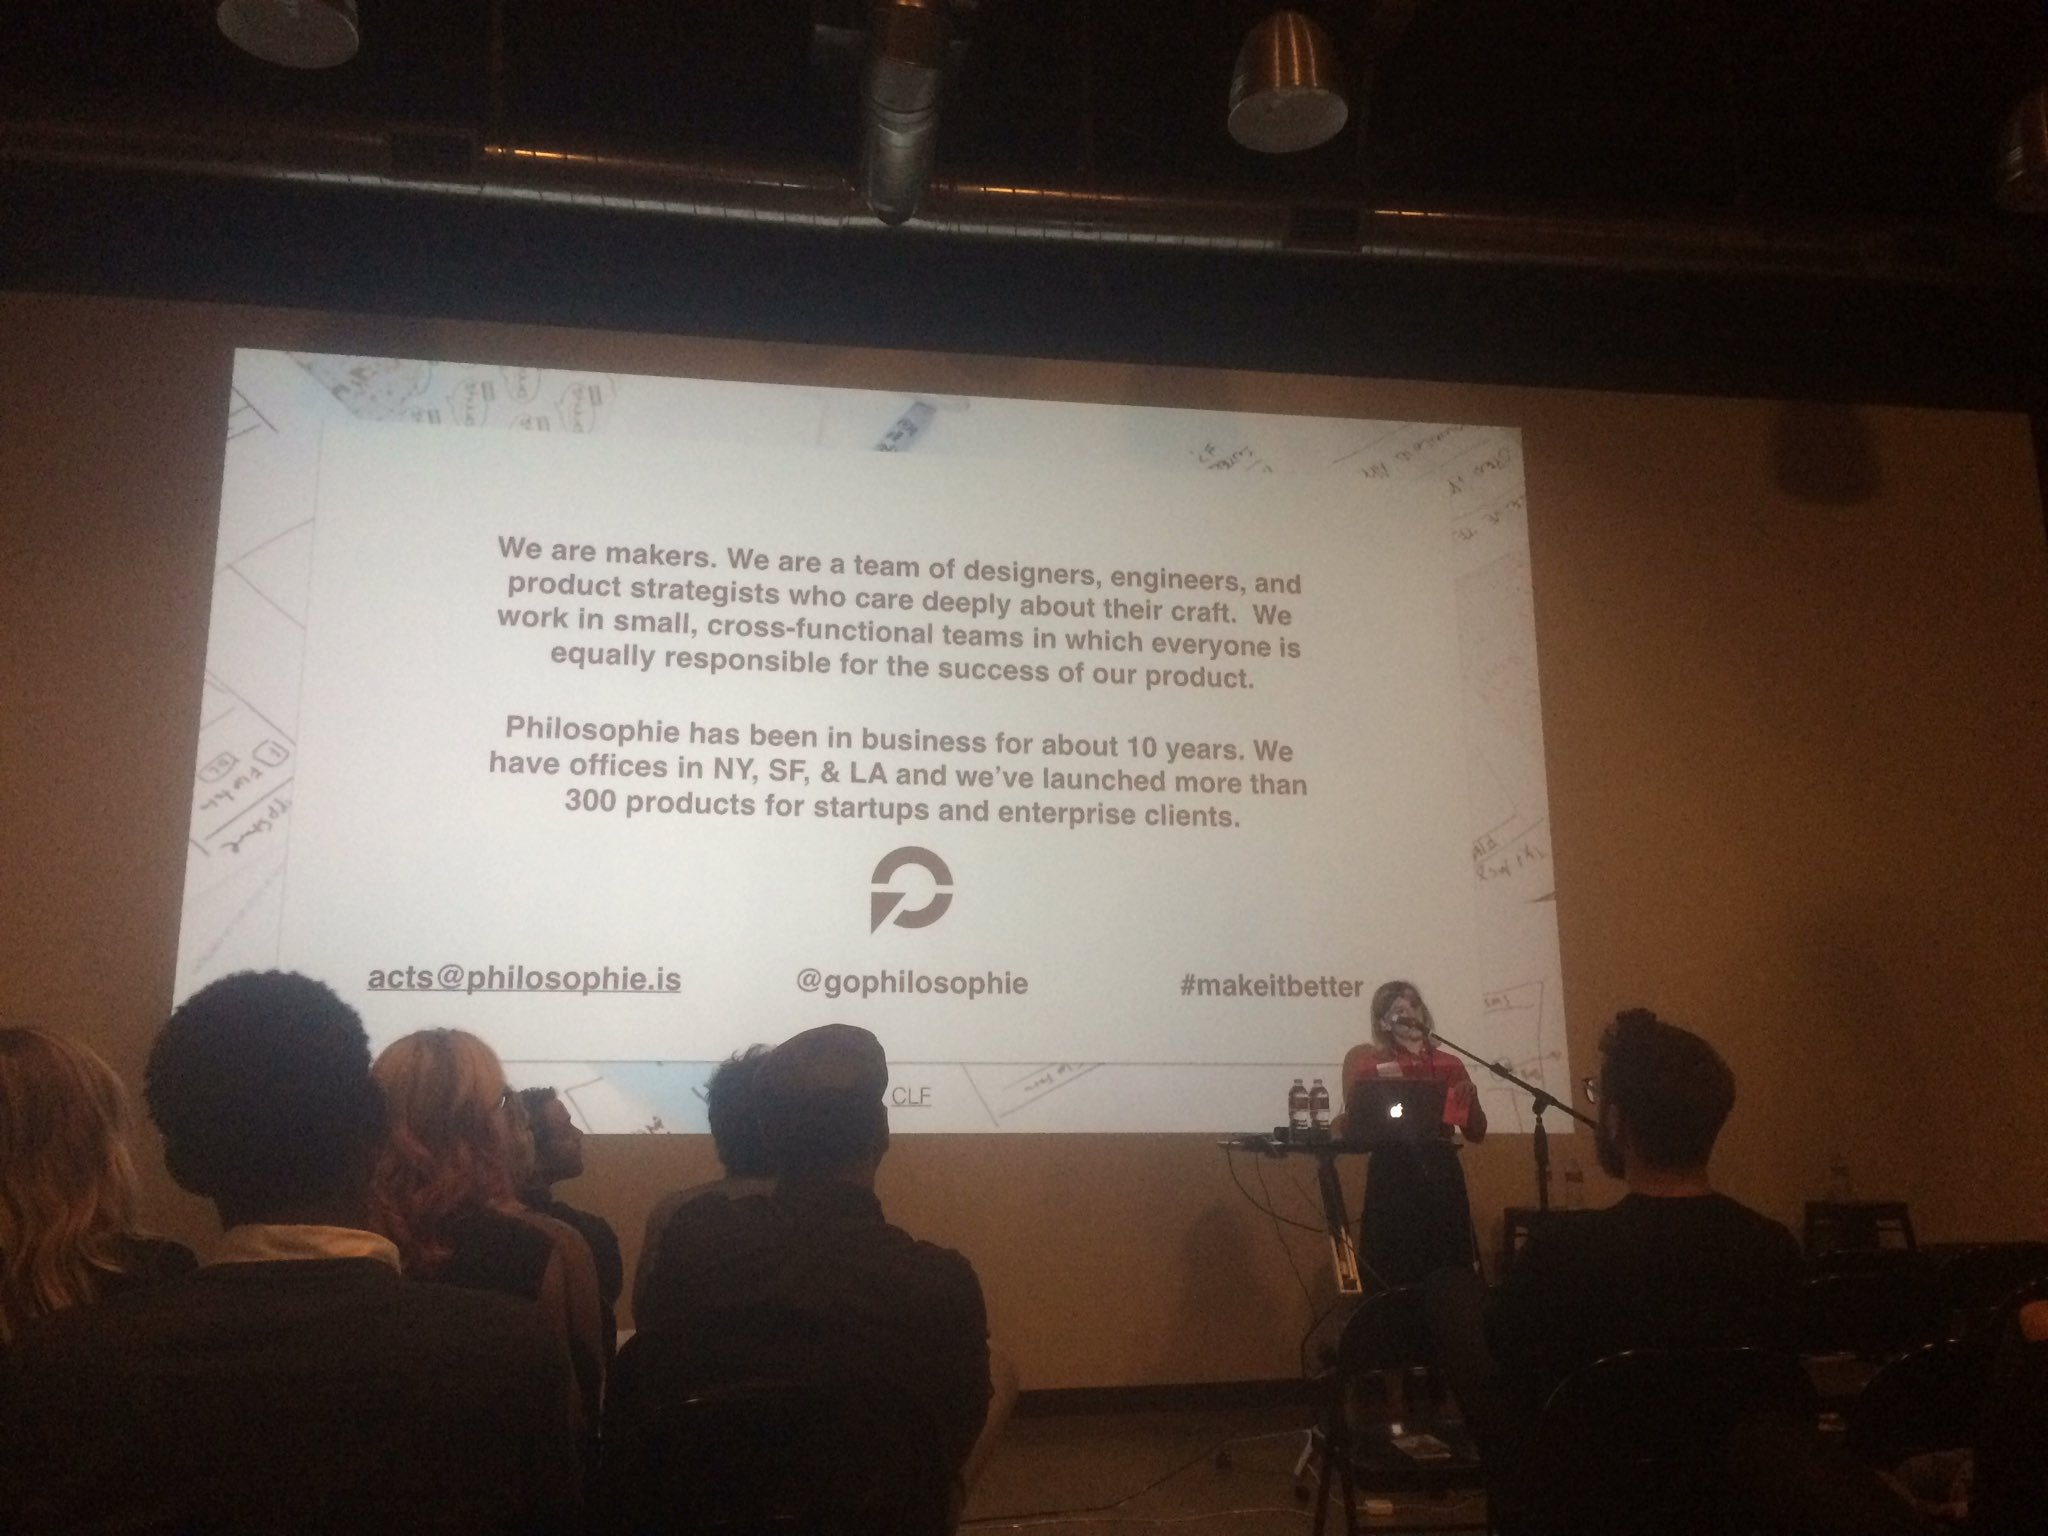 .@lara_fedoroff talks about sponsor @gophilosophie #wud16la https://t.co/iXnd8SGyjc